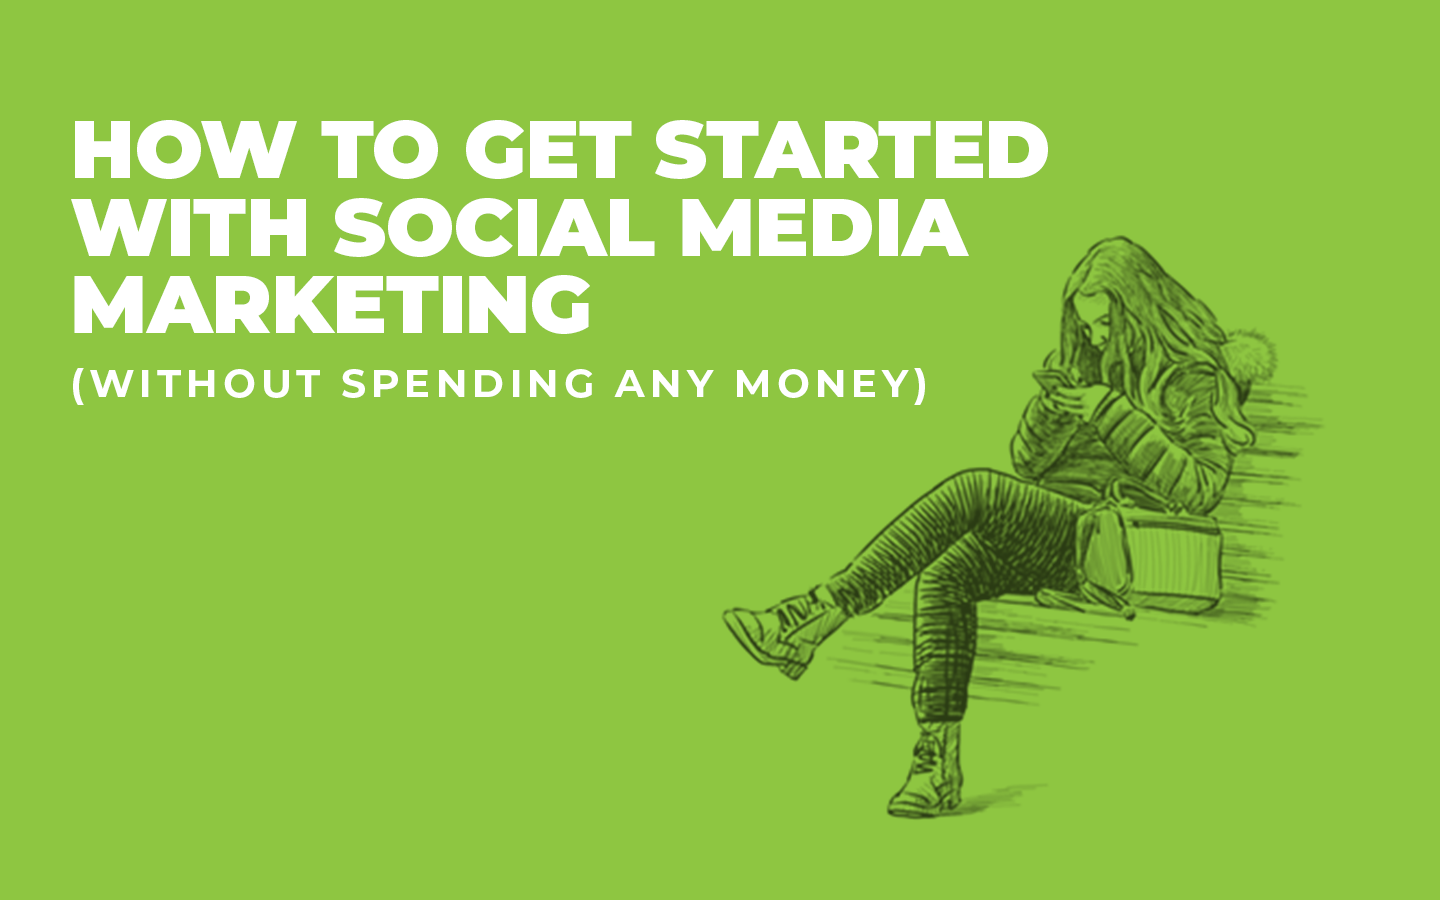 2018.5.11 How To Get Started On Social Media Marketing Without Spending Any Money